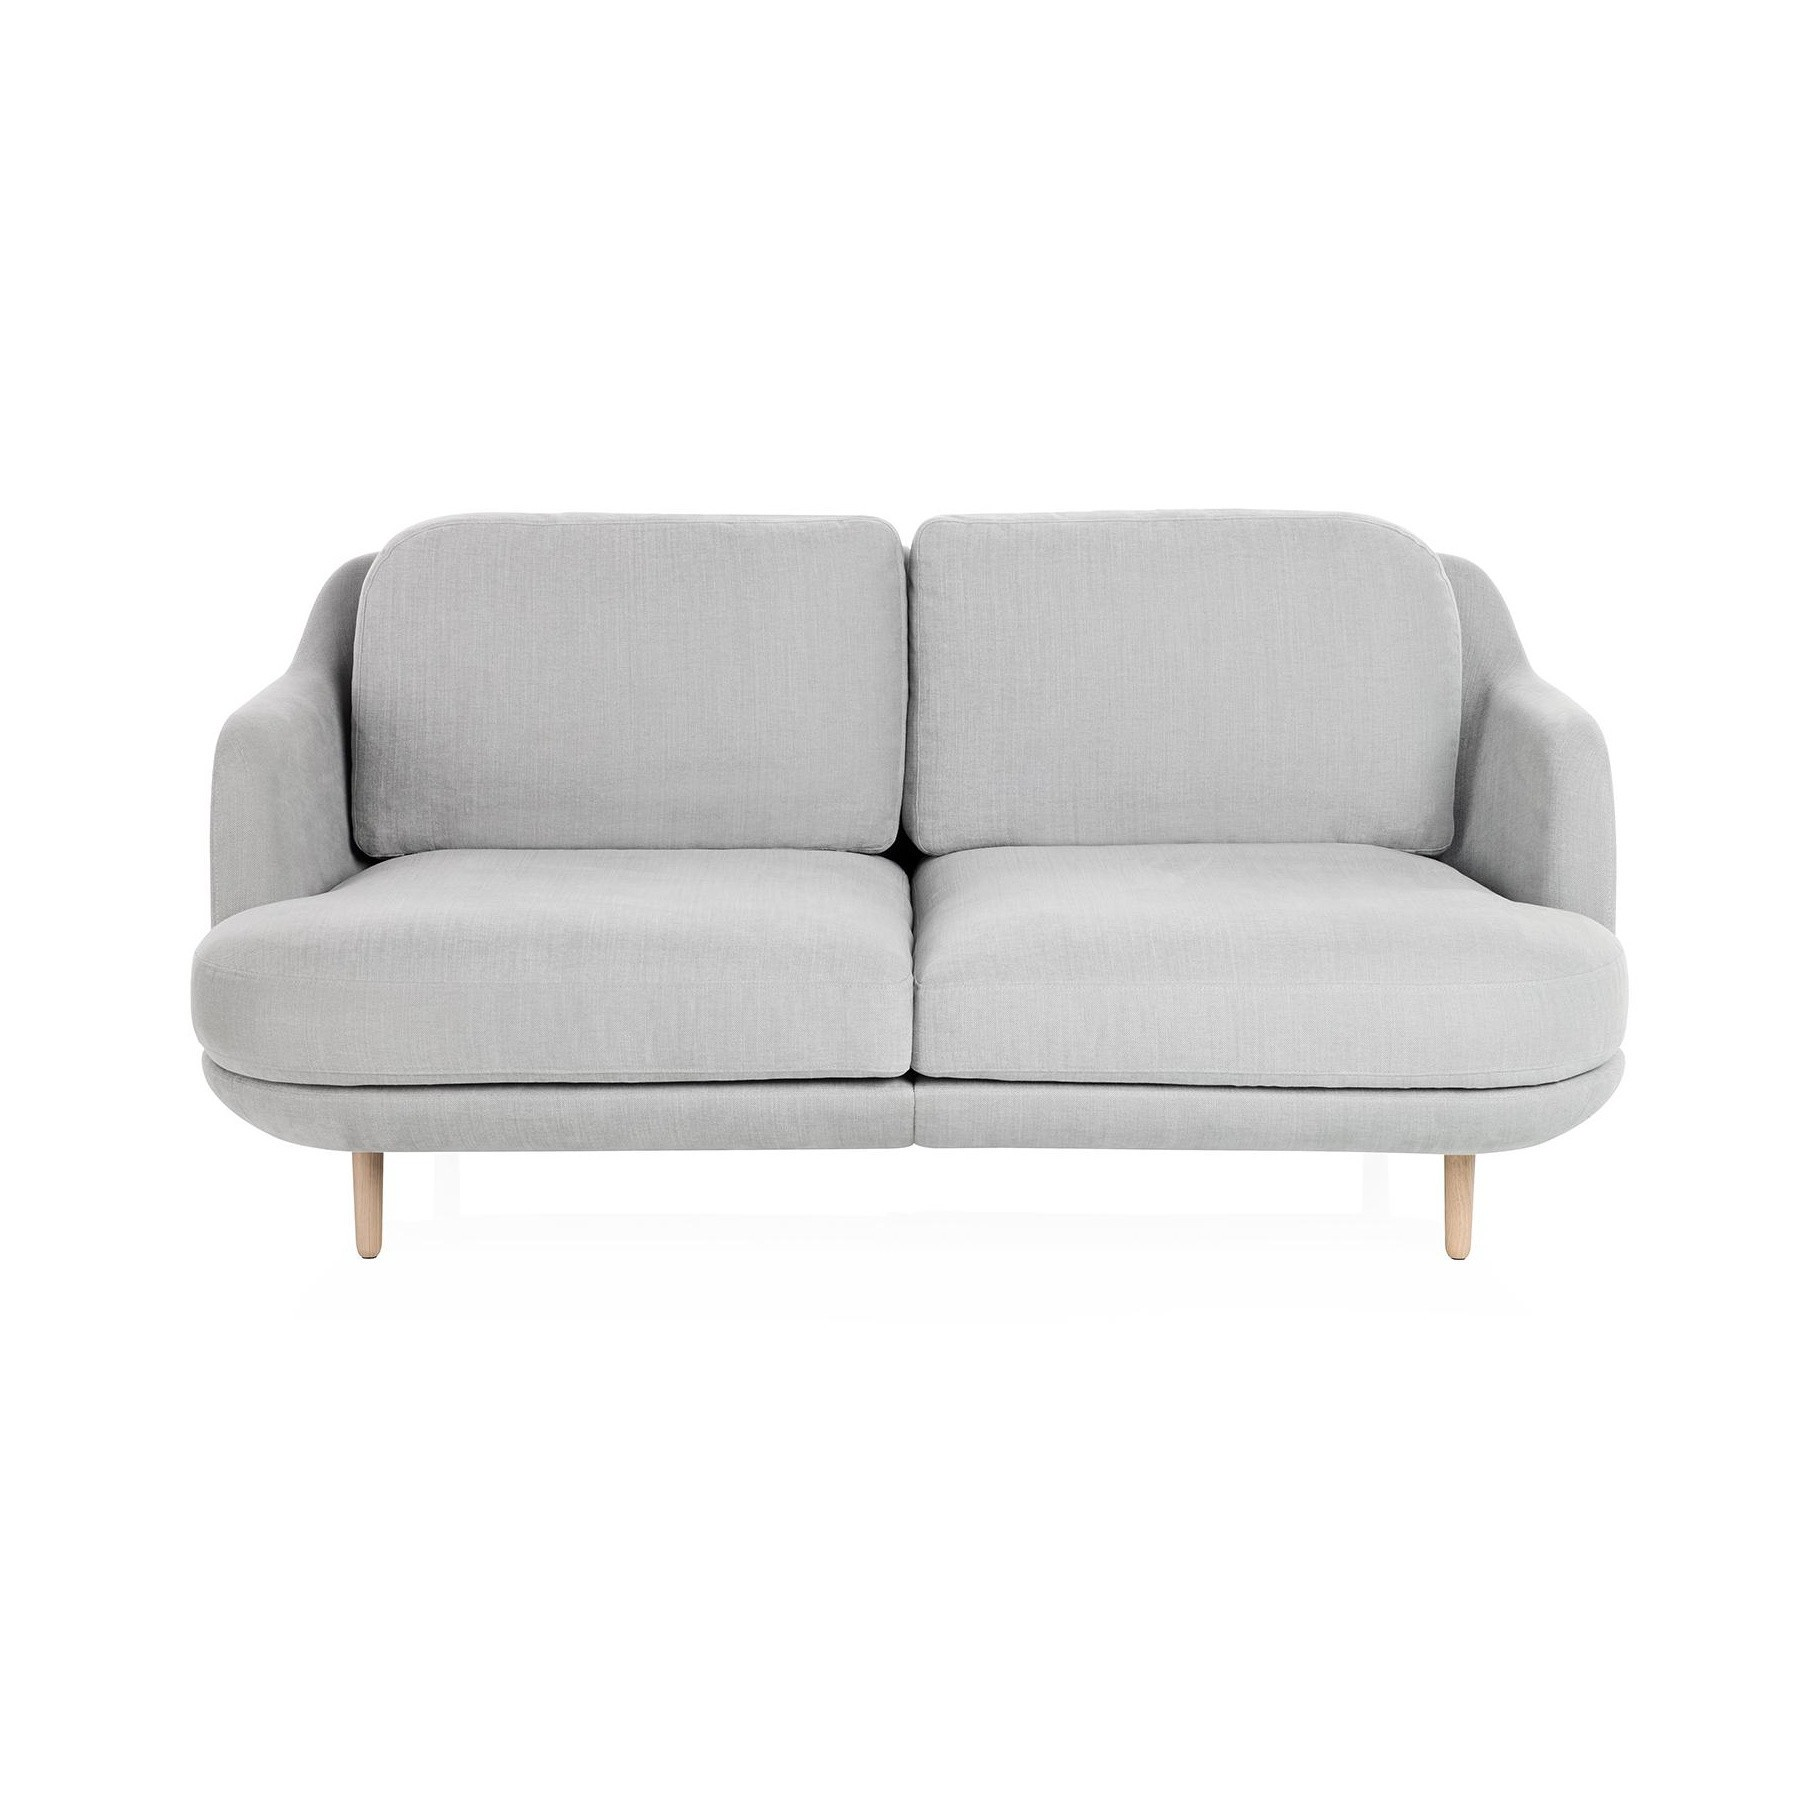 Big Sofa 250 Breit Lune 2 Seater Sofa 155 X 93 5 Cm